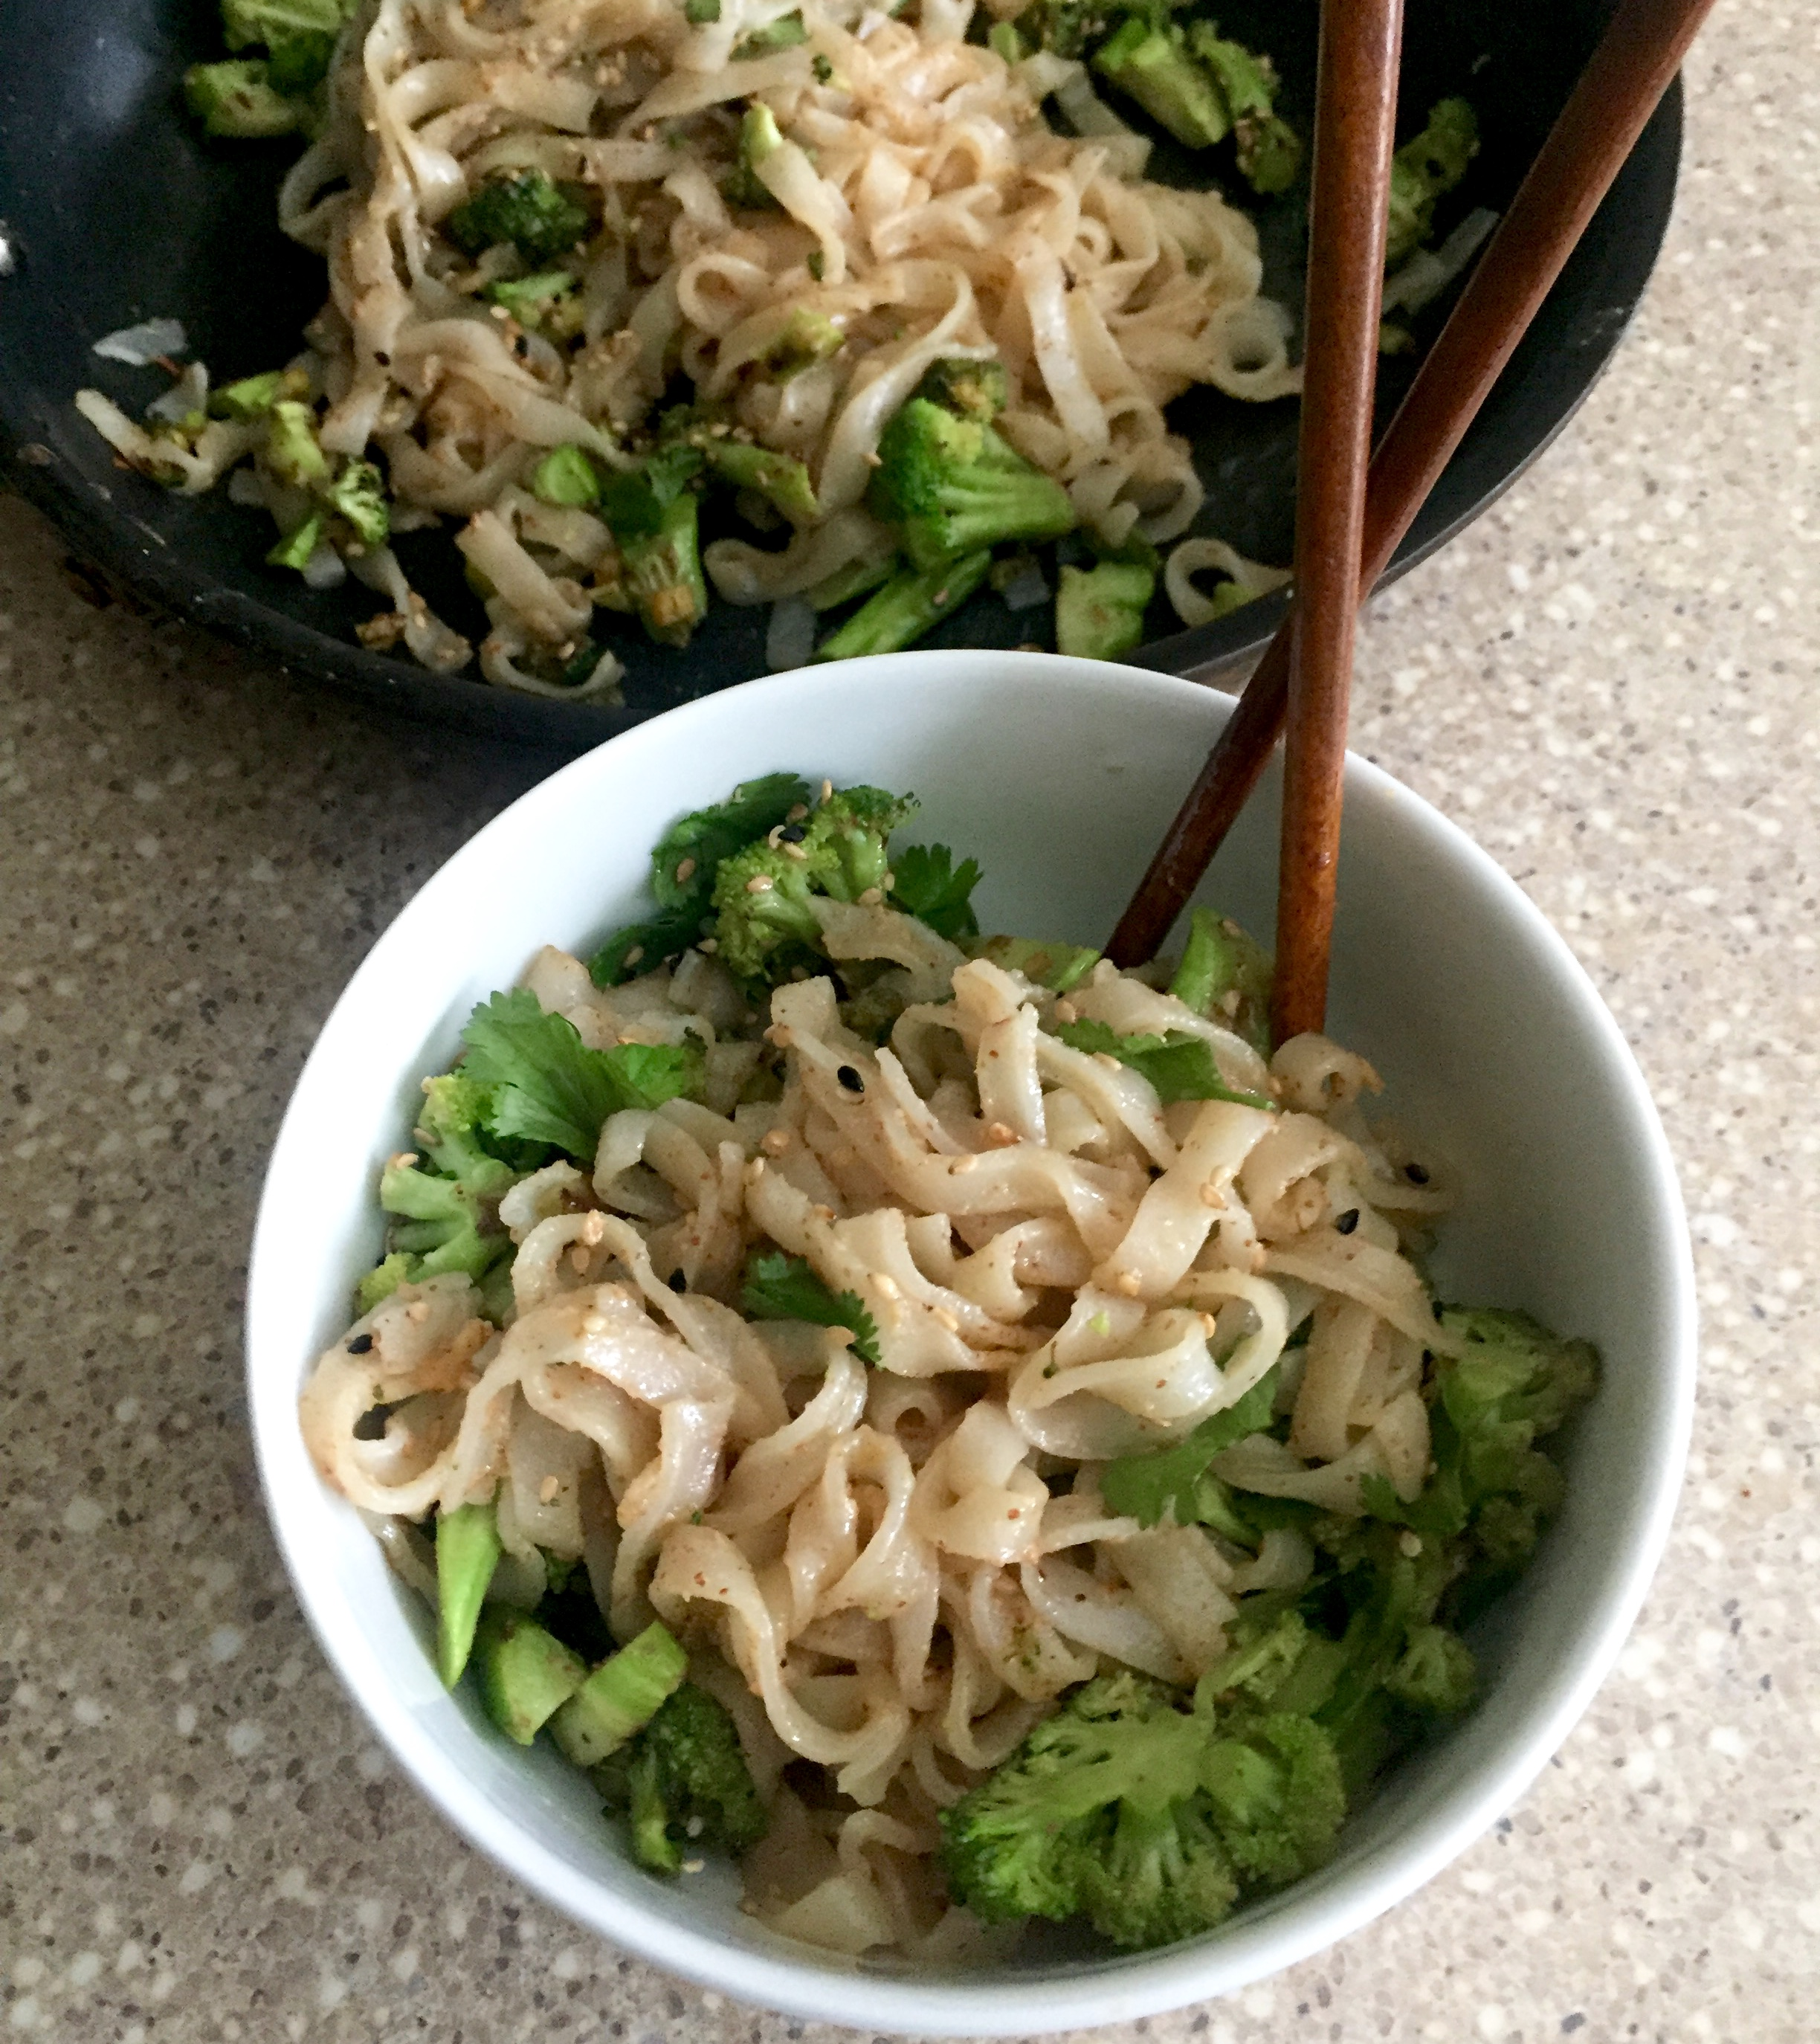 Almond butter vegetable stir fry with Thai rice noodles and skilet